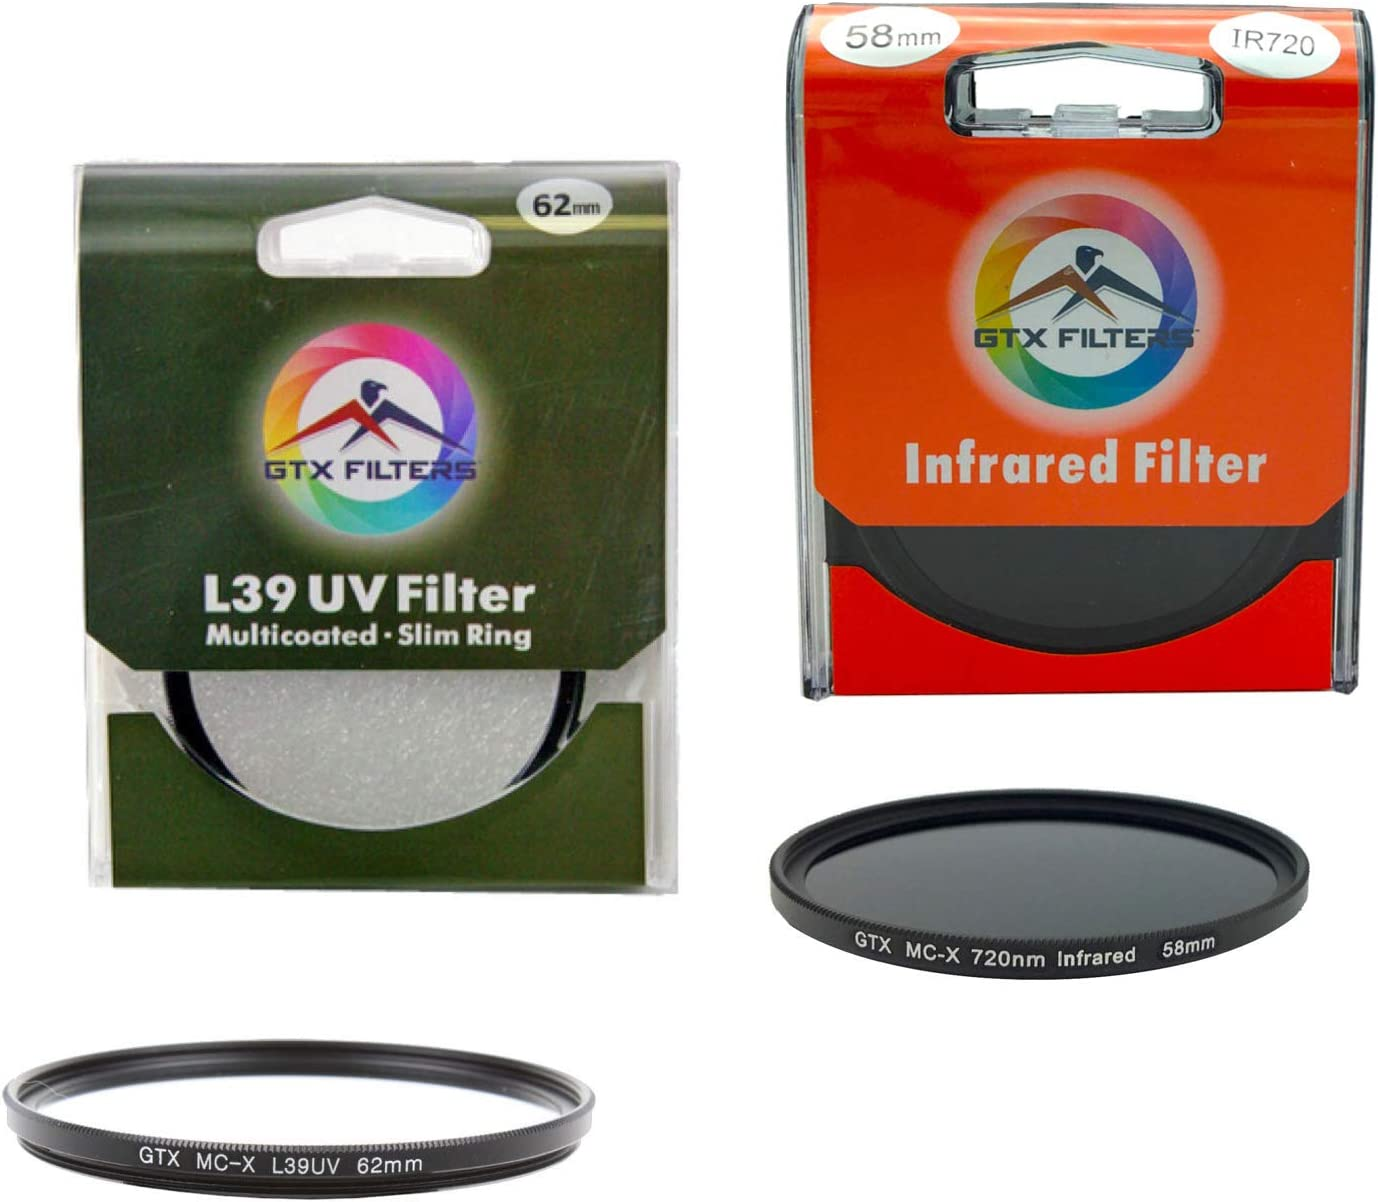 Lens Cap Sunset Foto 58mm Lens Filter and Accessory Kit Includes: Schott Glass Multicoated L39 UV and IR Infrared 720nm Lens Filter Set Lens Cleaner Kit